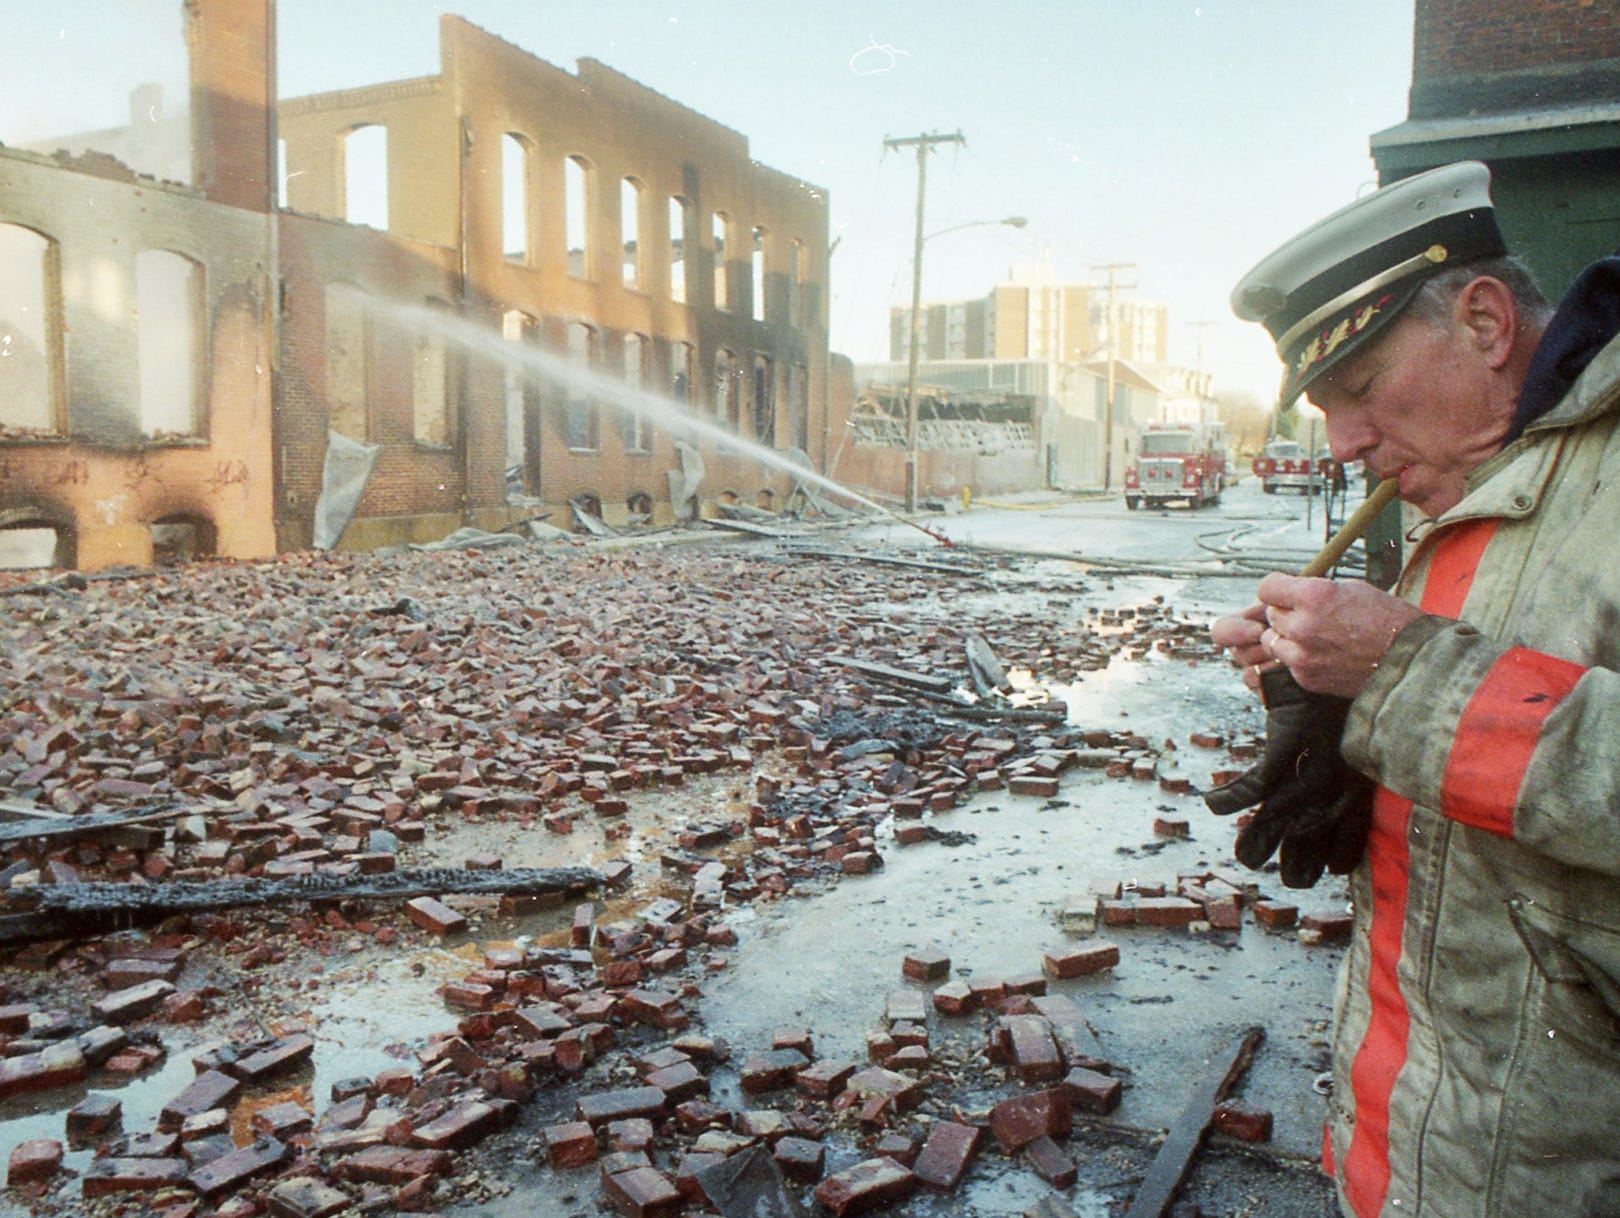 A York city fire official takes a cigar break the morning after the fire. A fire began at the former Thonet Furniture plant at 491 East Princess Street on December 11, 1993. Eventually, the four alarm fire spread through the complex of buildings and several other properties.